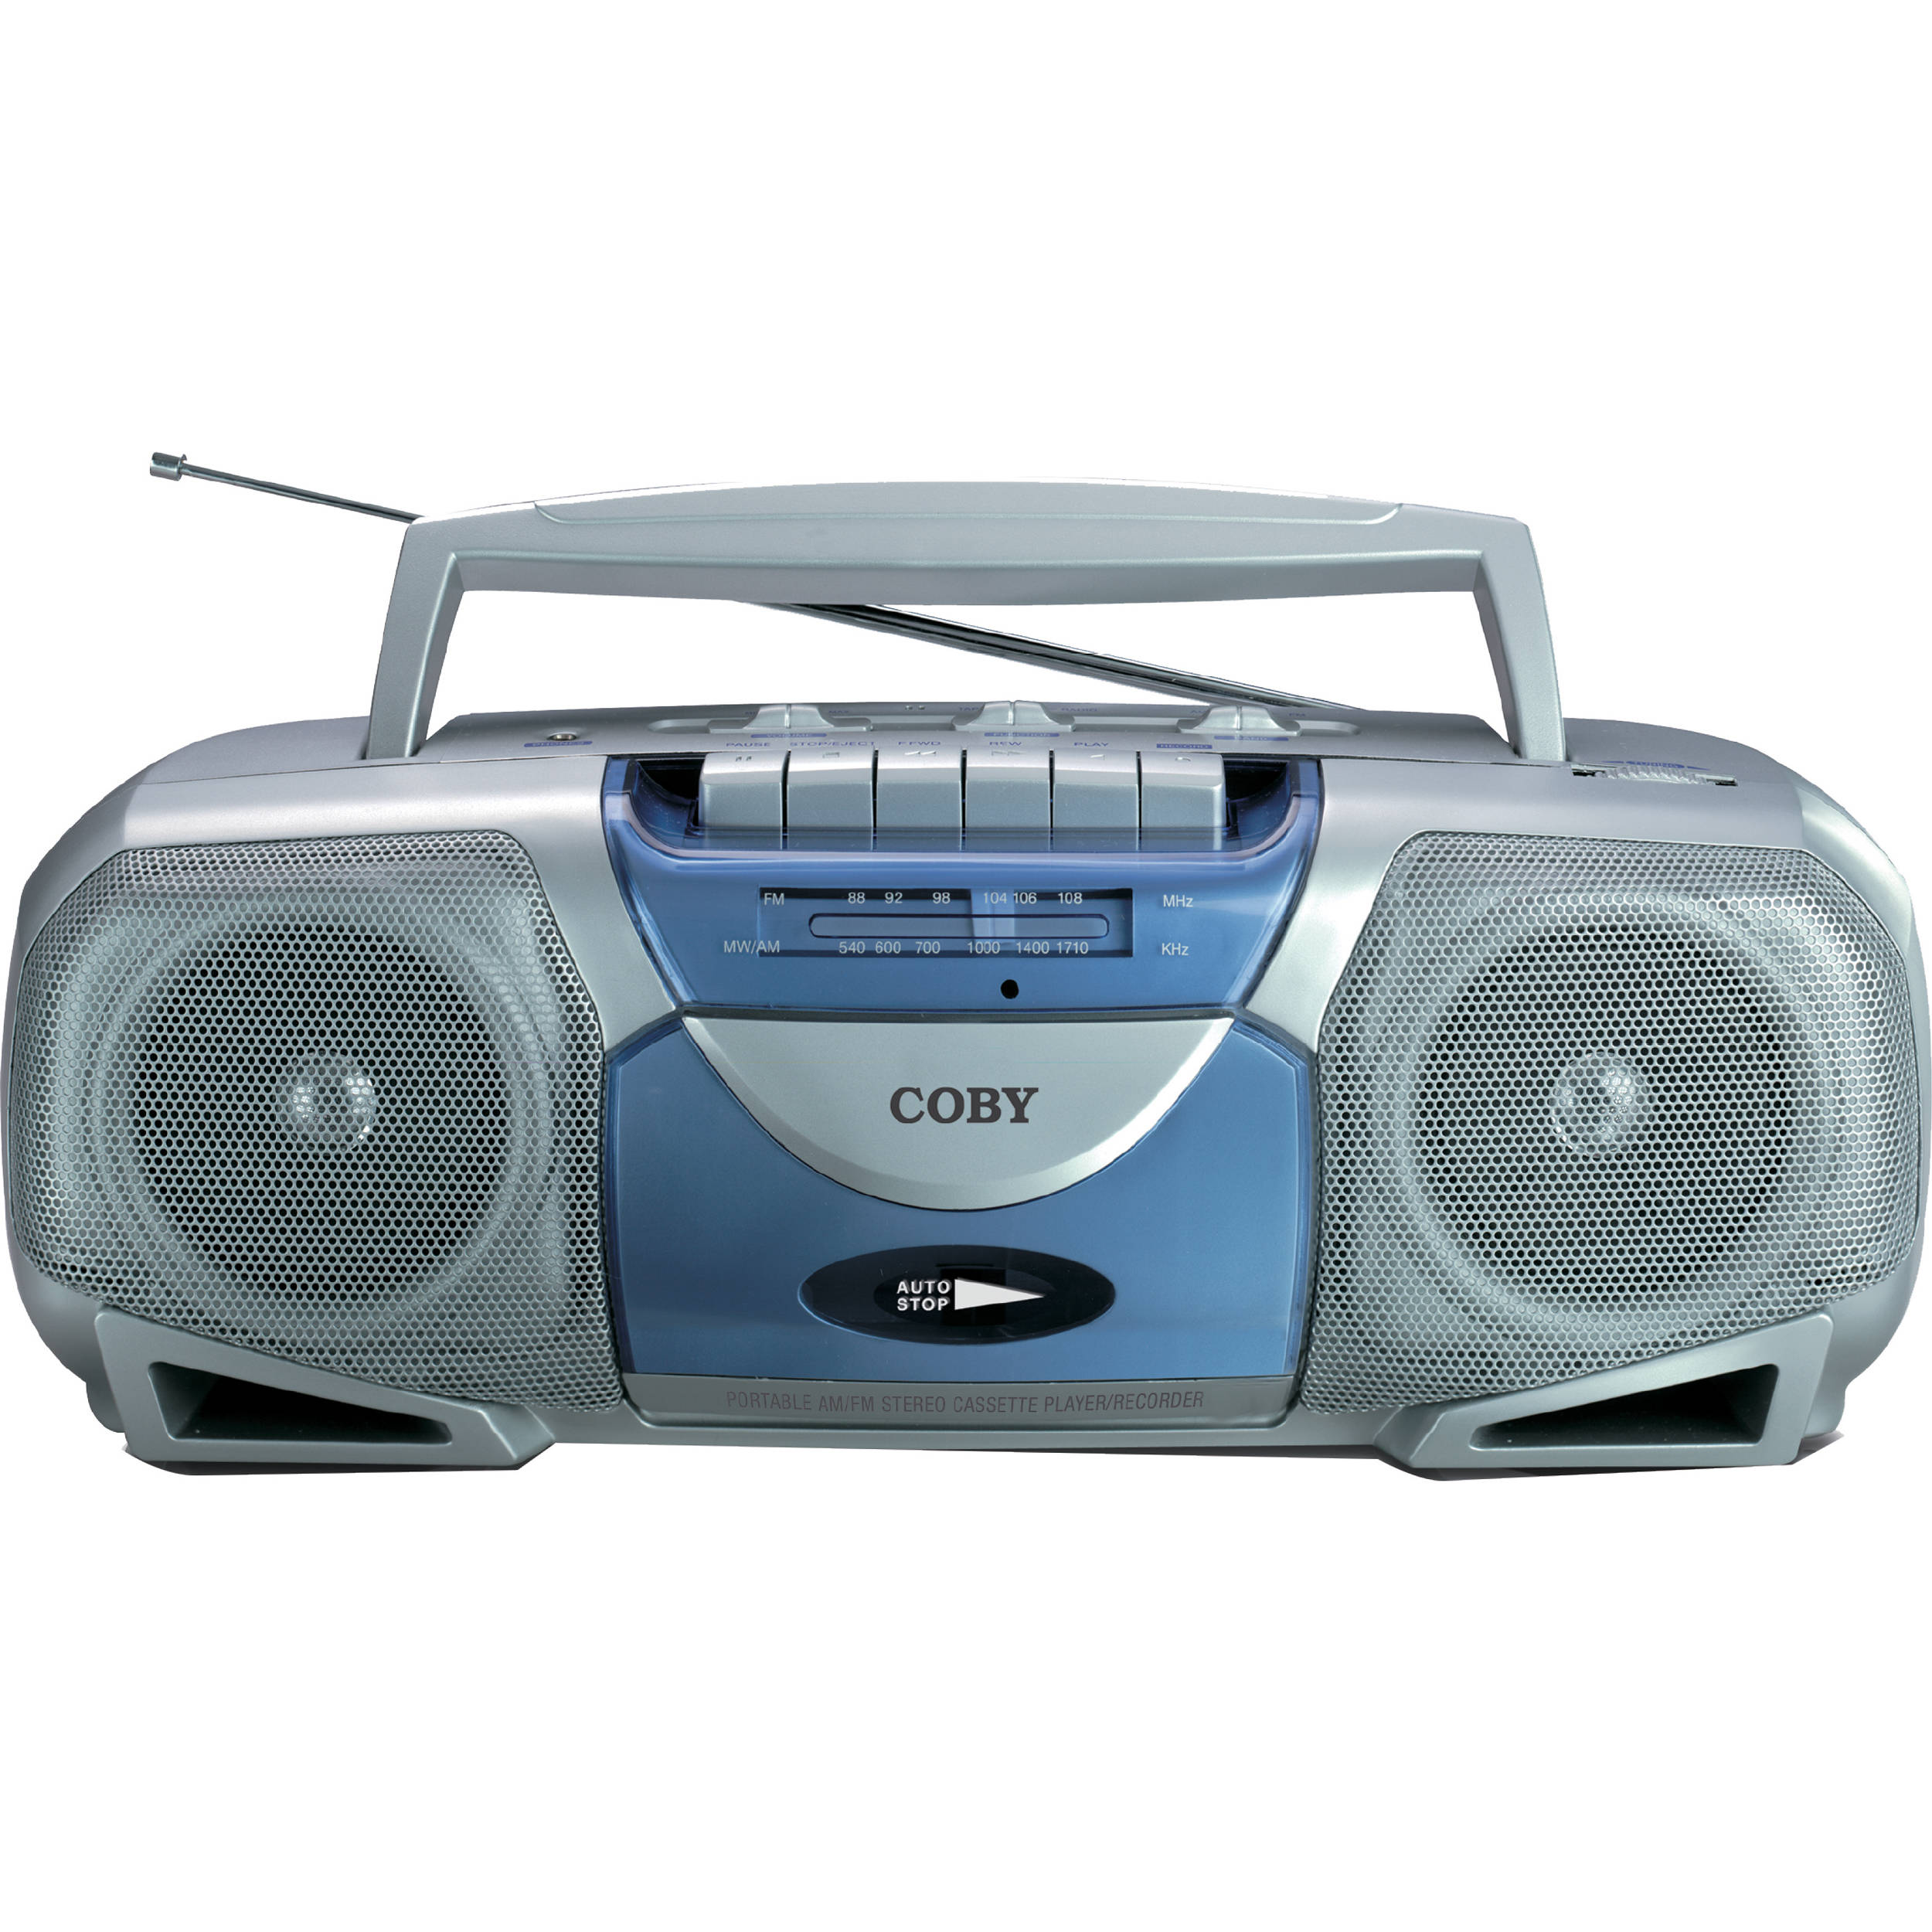 coby portable cassette player recorder with am fm radio cxc 450. Black Bedroom Furniture Sets. Home Design Ideas